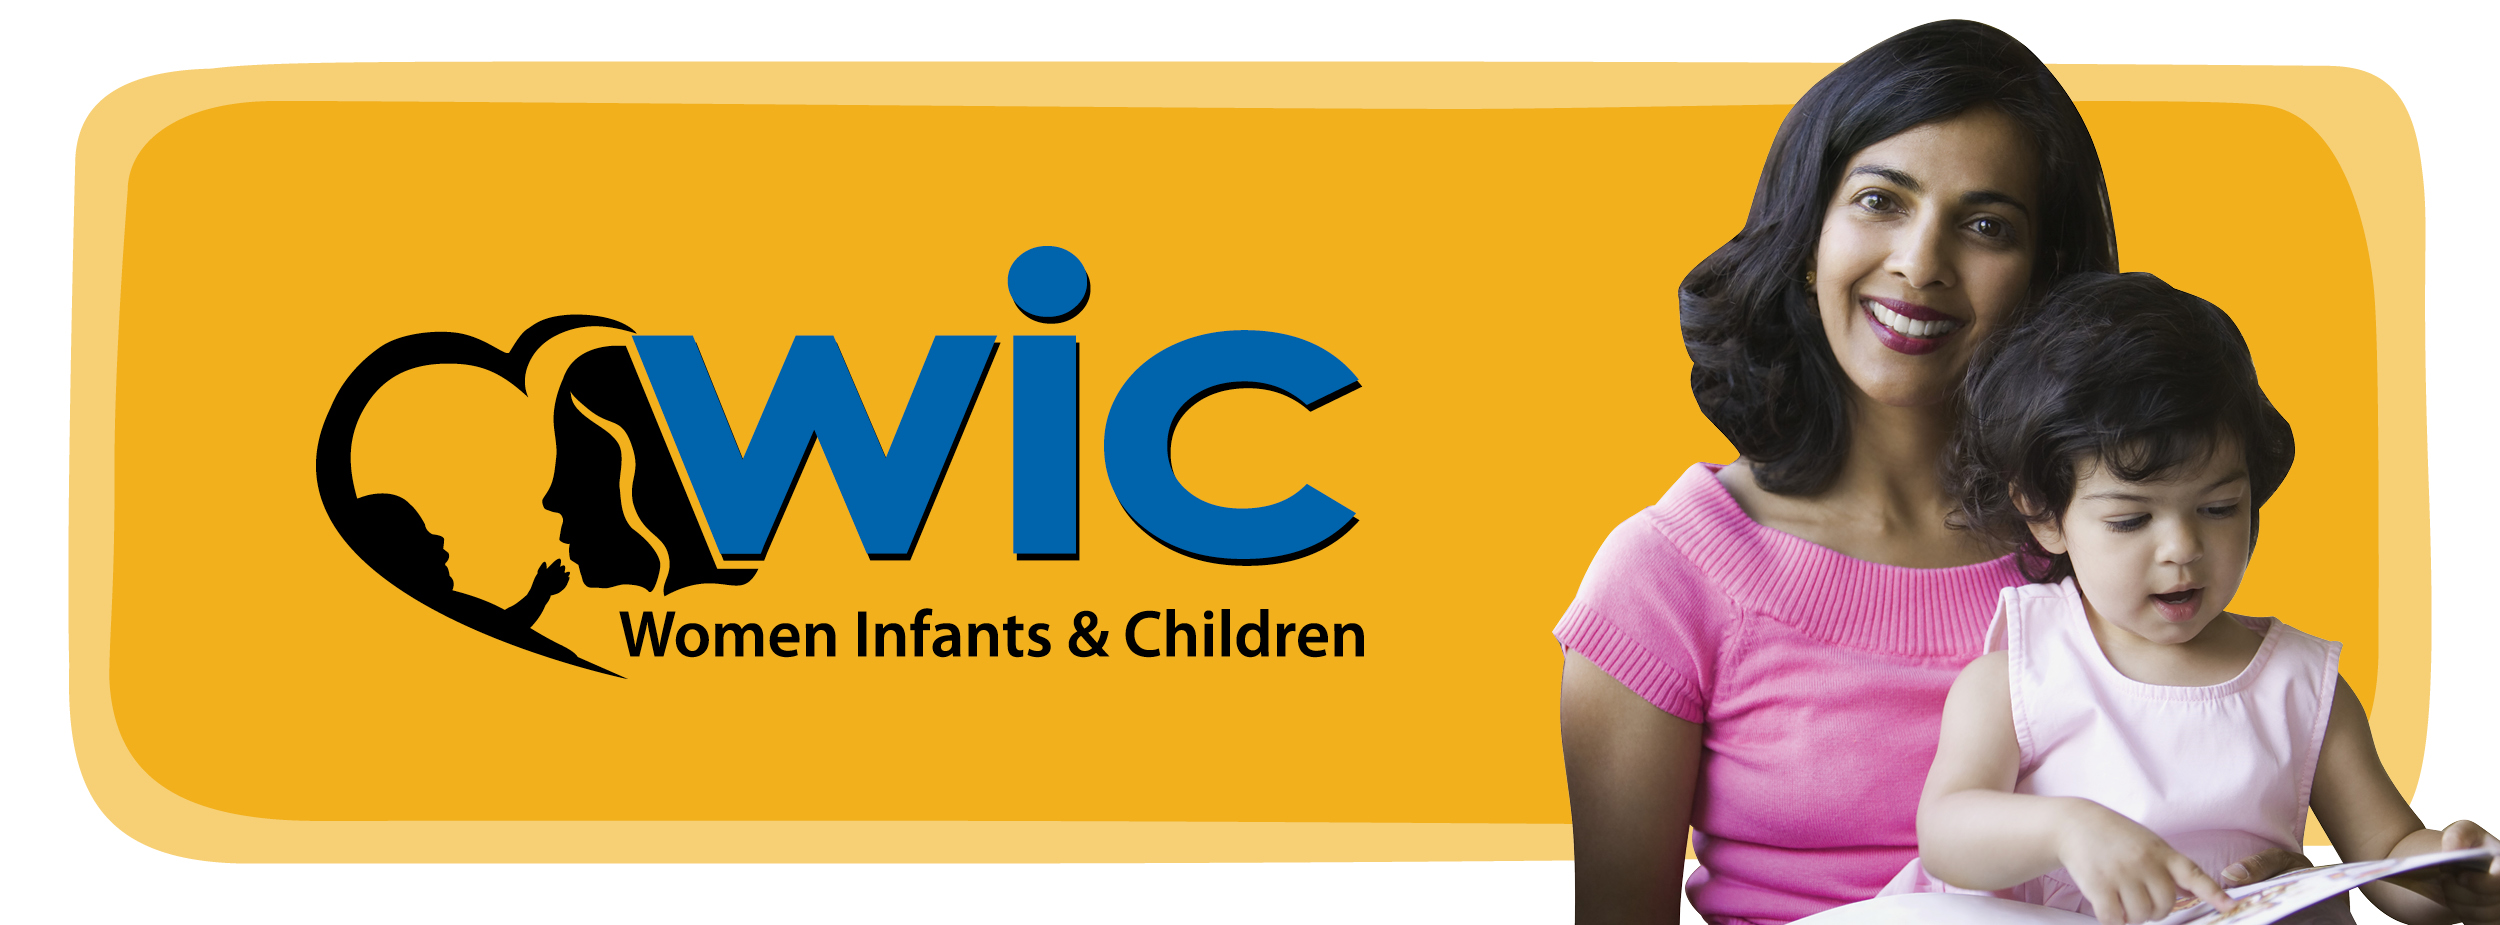 wic program The maryland wic program is a supplemental nutrition program for women, infants and children under the age 5 about wic wic is a federally funded program that provides healthy supplemental foods and nutrition counseling for pregnant women, new mothers, infants and children under age five.